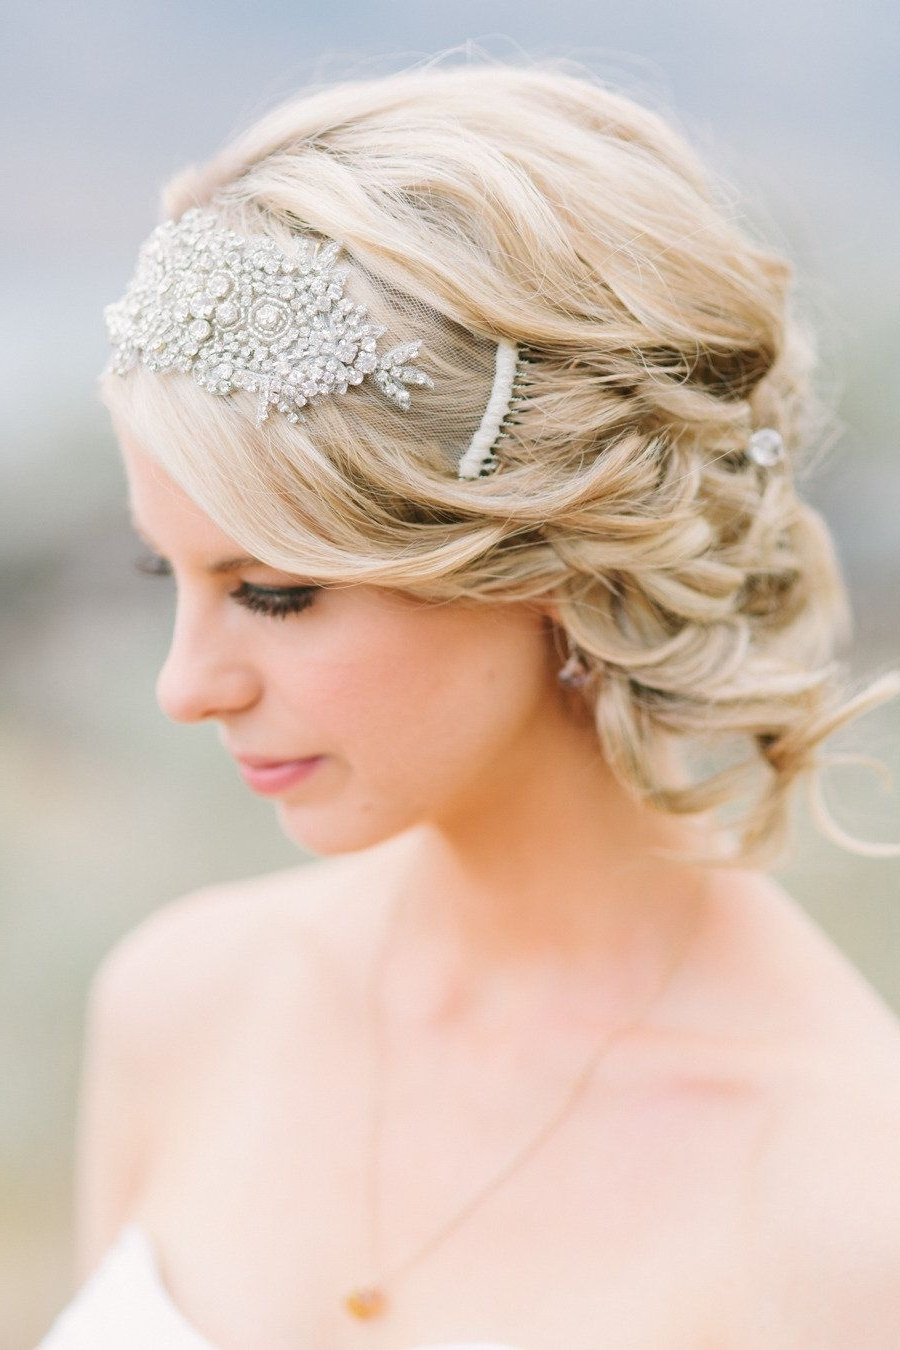 Most Current Wedding Hairstyles With Headpiece In British Columbia Wedding From The Nickersons (View 7 of 15)